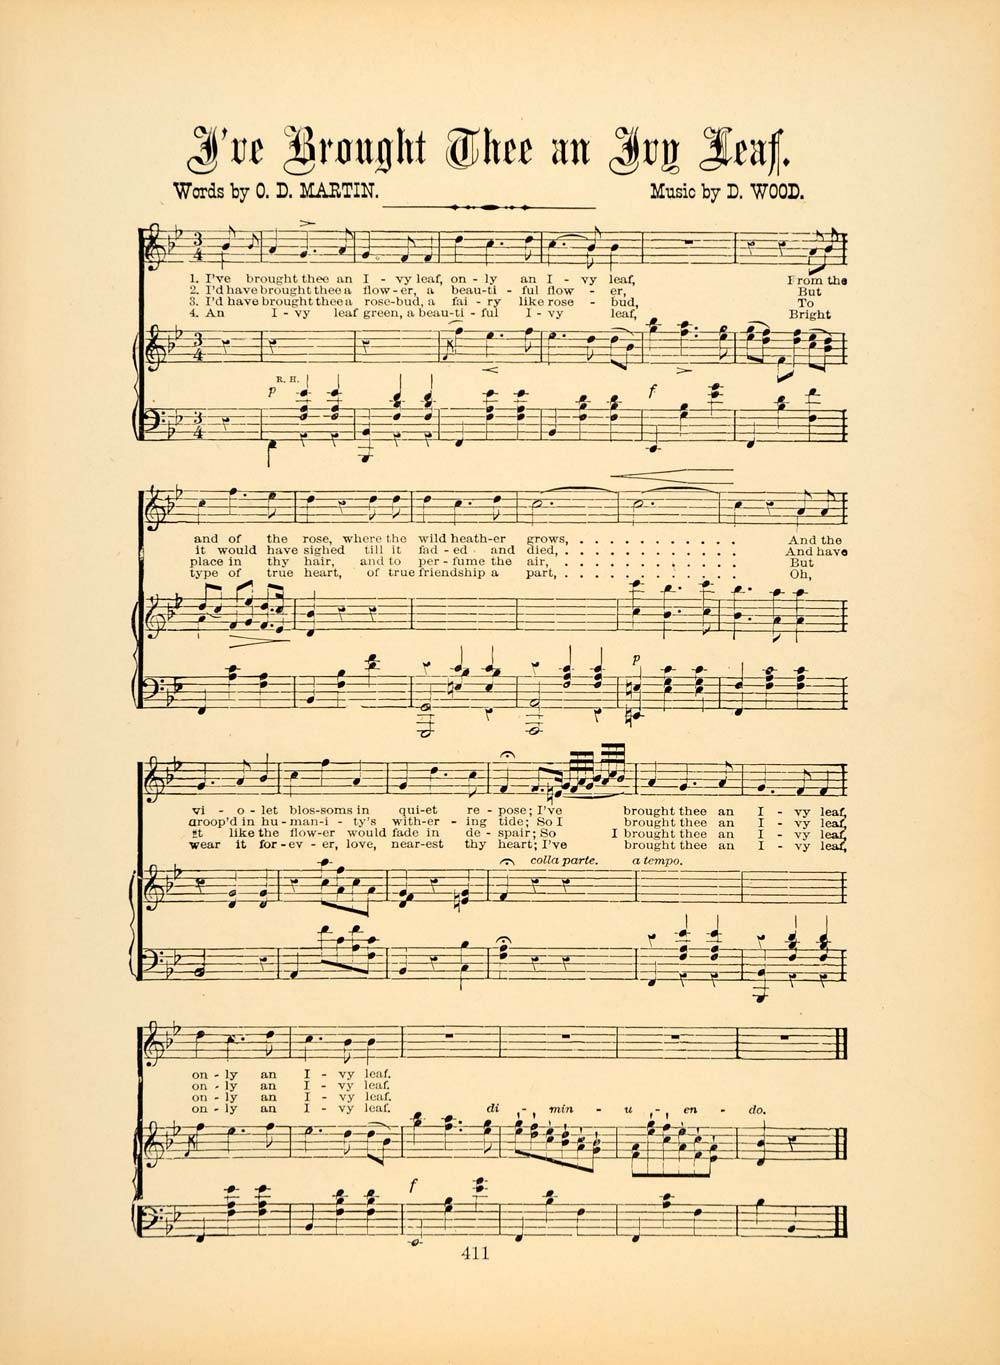 1894 I've Brought Thee an Ivy Leaf Song Sheet Music - ORIGINAL HISTORIC SND1